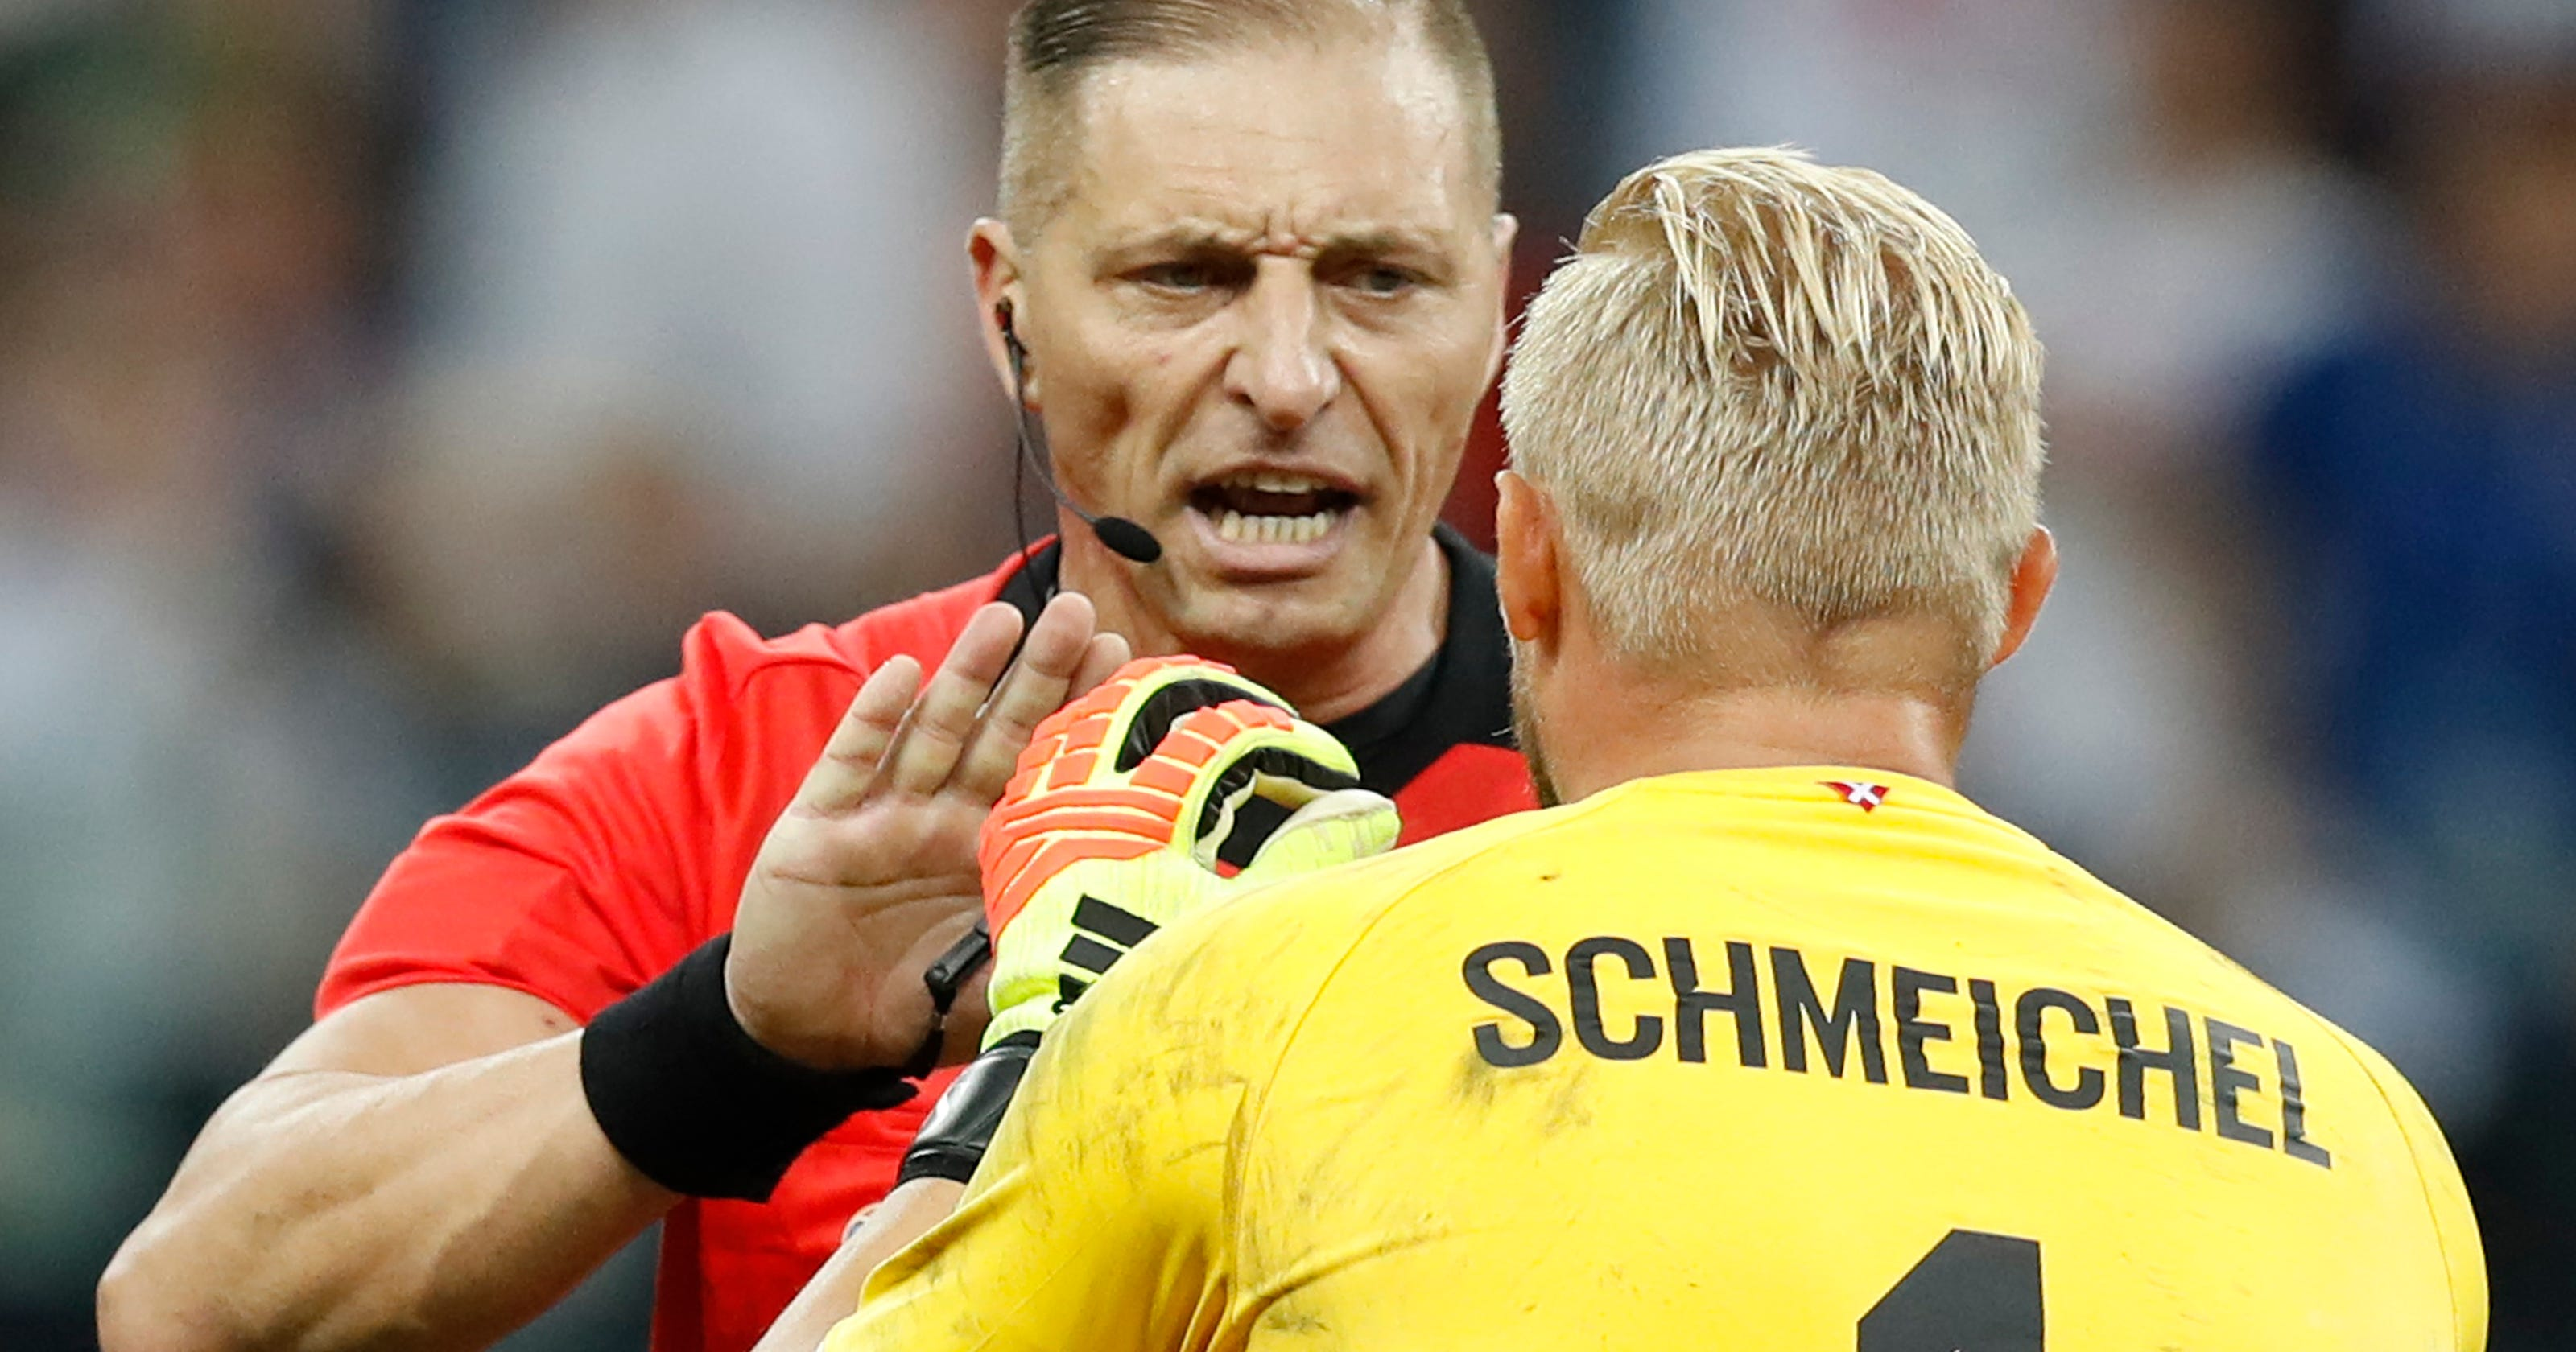 41ddc84a6 Denmark goalkeeper gets one-upped in World Cup shootout